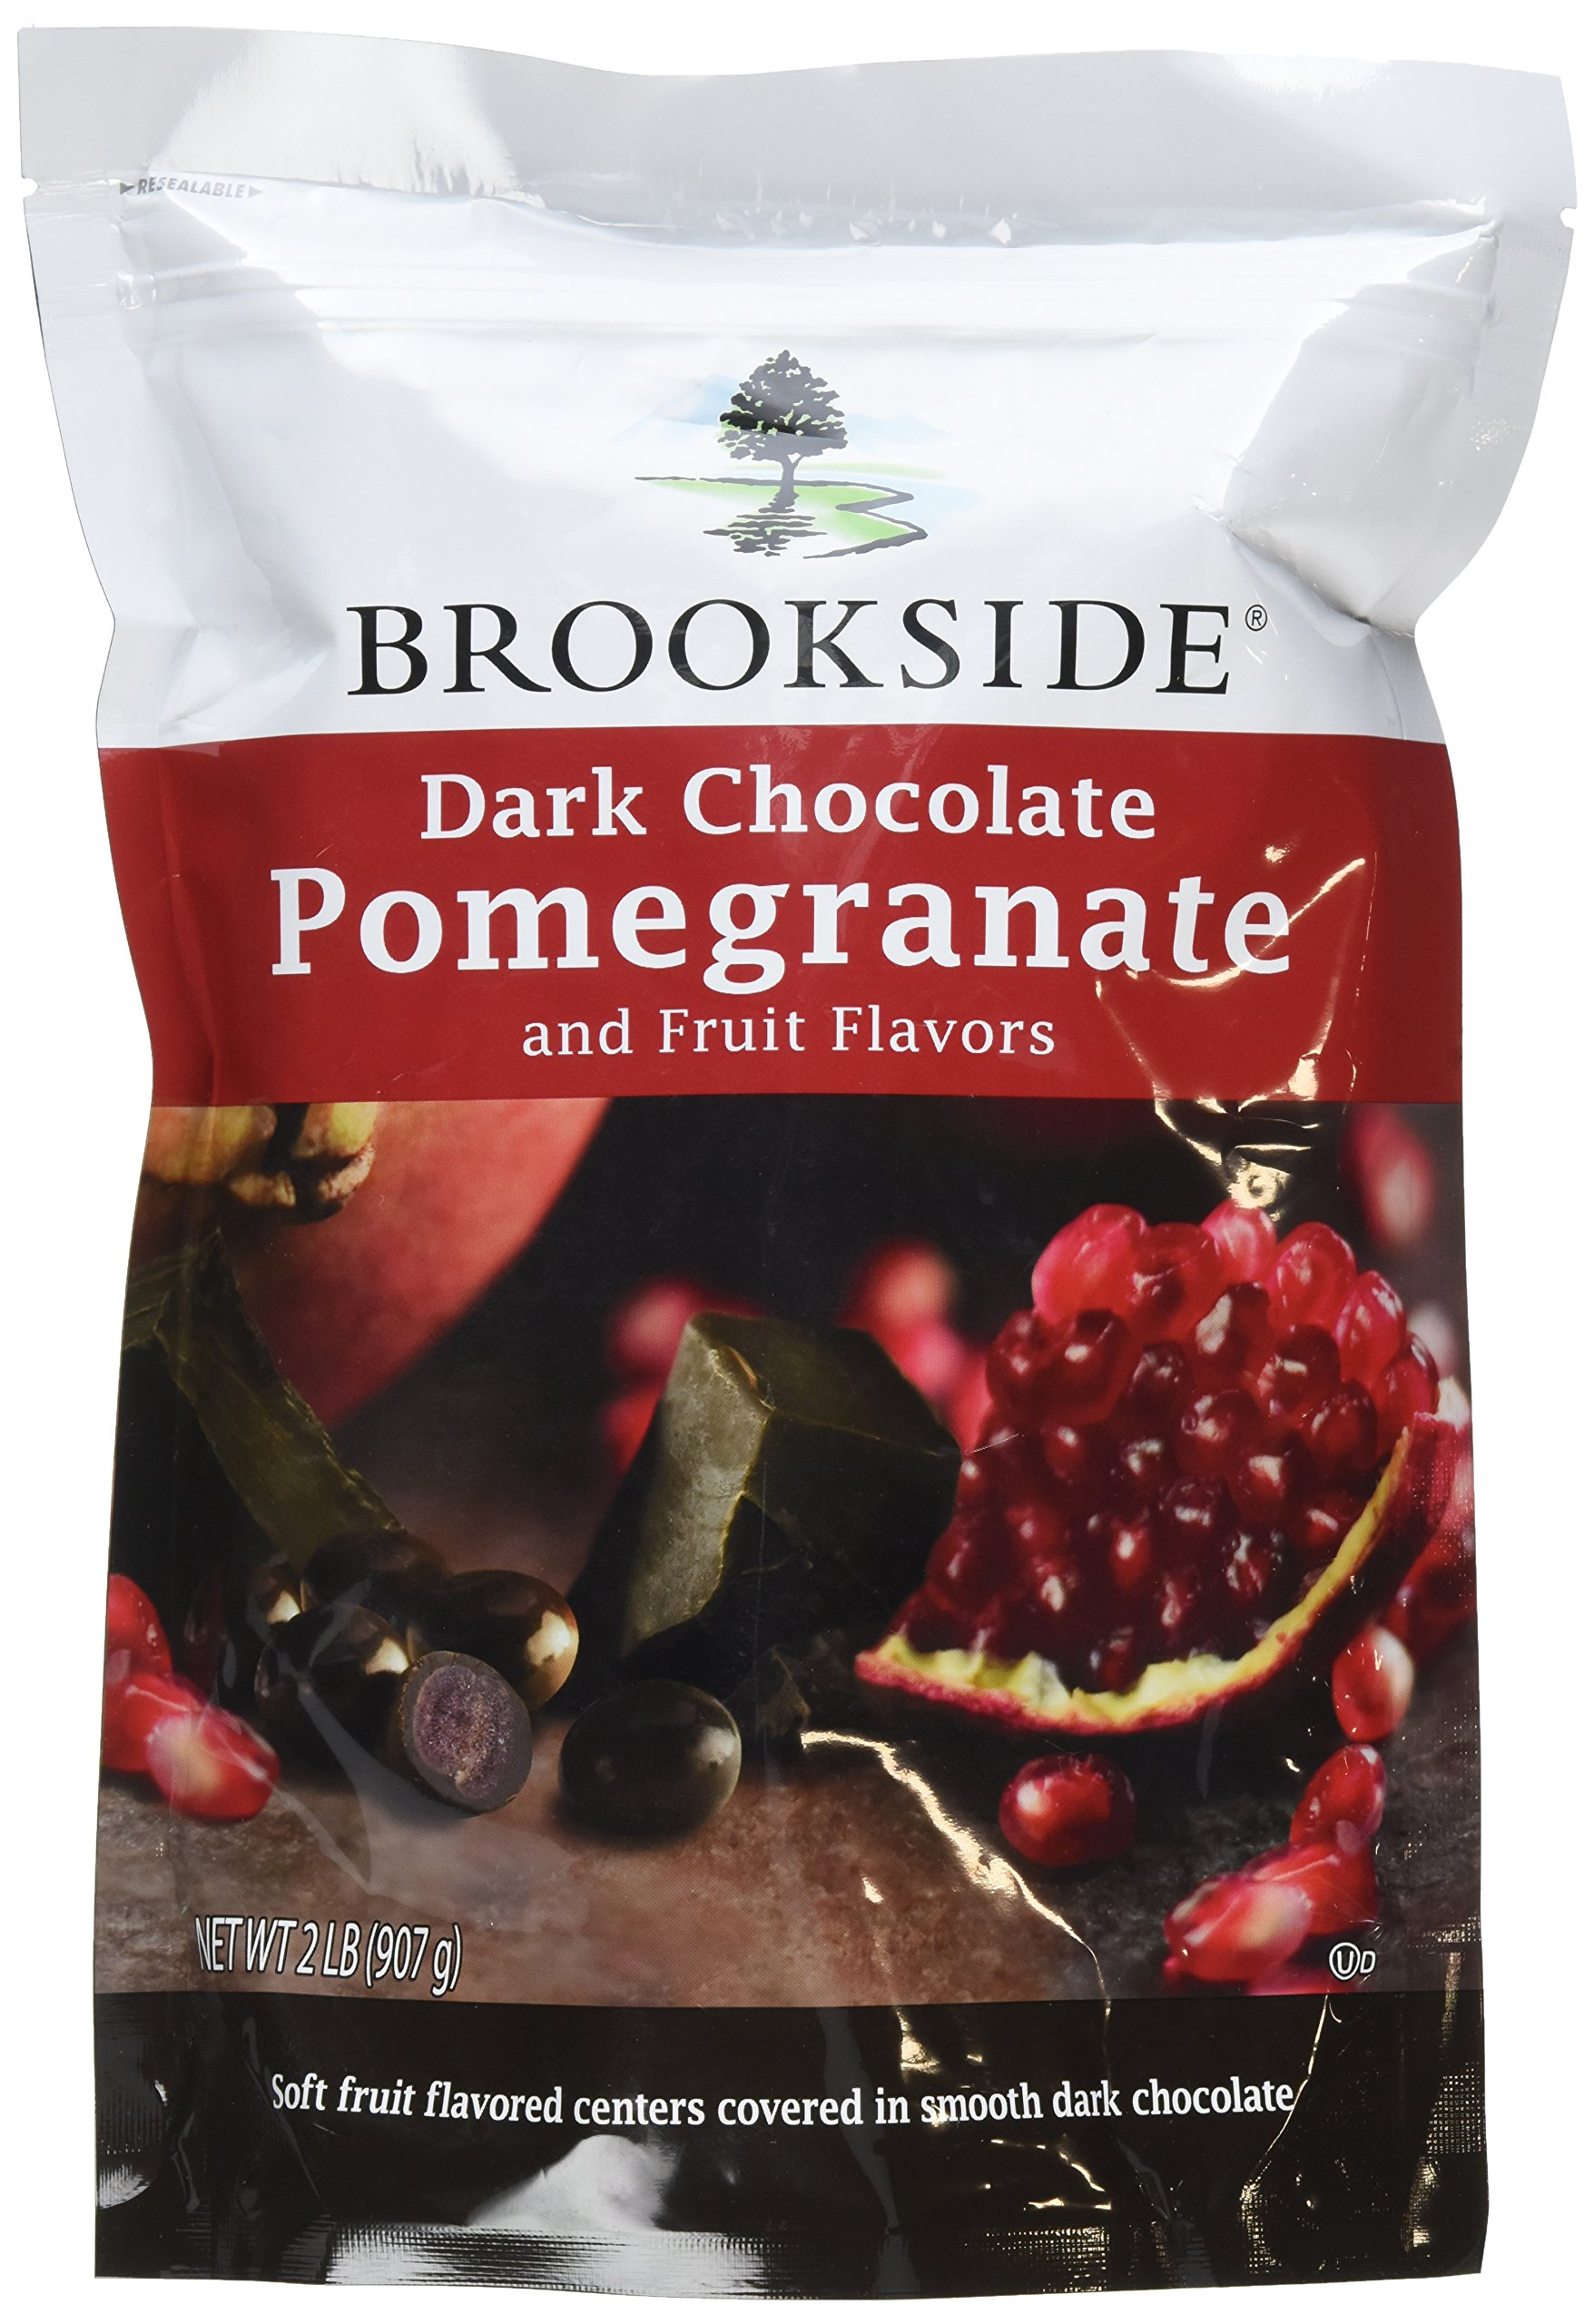 Brookside Dark Chocolate Pomegranate and Fruit Flavors Candy, 32-Ounce Bag (Pack of 2) by Brookside (Image #1)